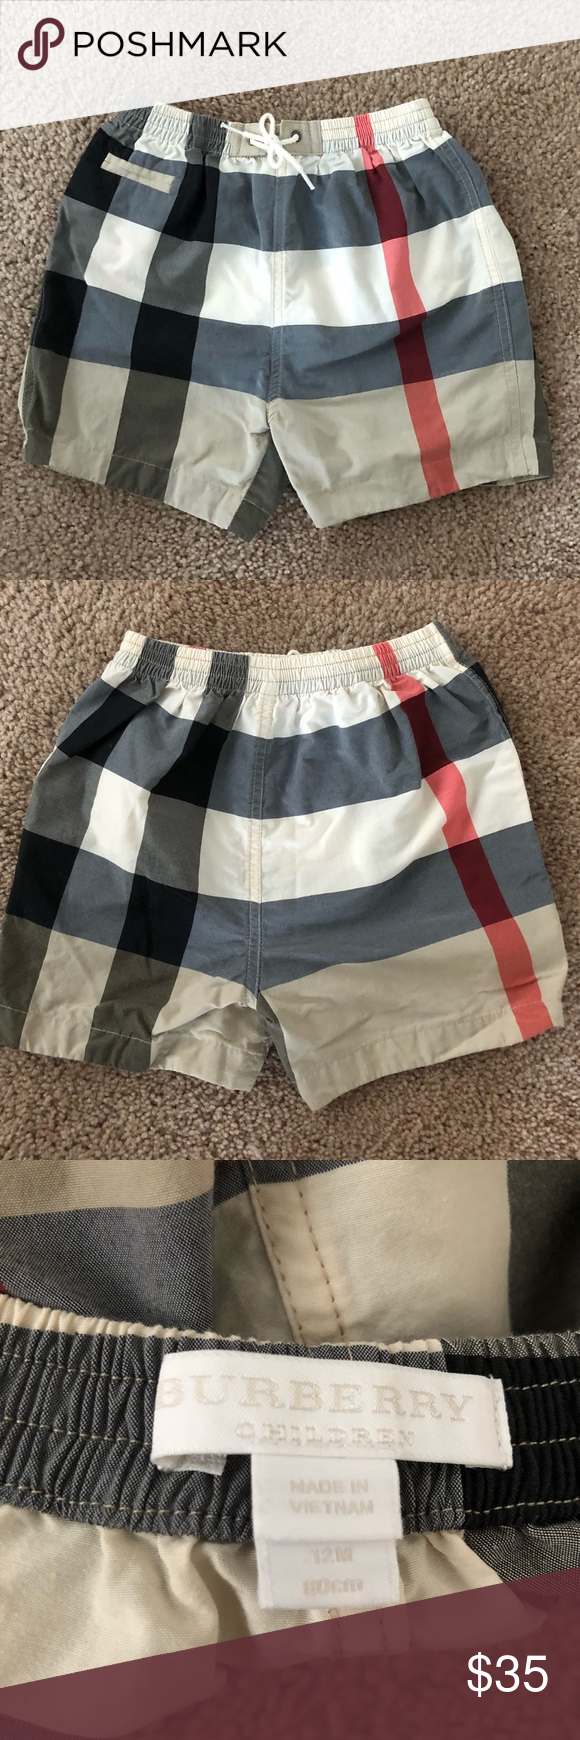 fdce96d4a003e Burberry 12mo swim trunks Get your little kid ready for summer in style!!! Burberry  swim bottoms, Size 12 months Simple, yet iconic Burberry check print.